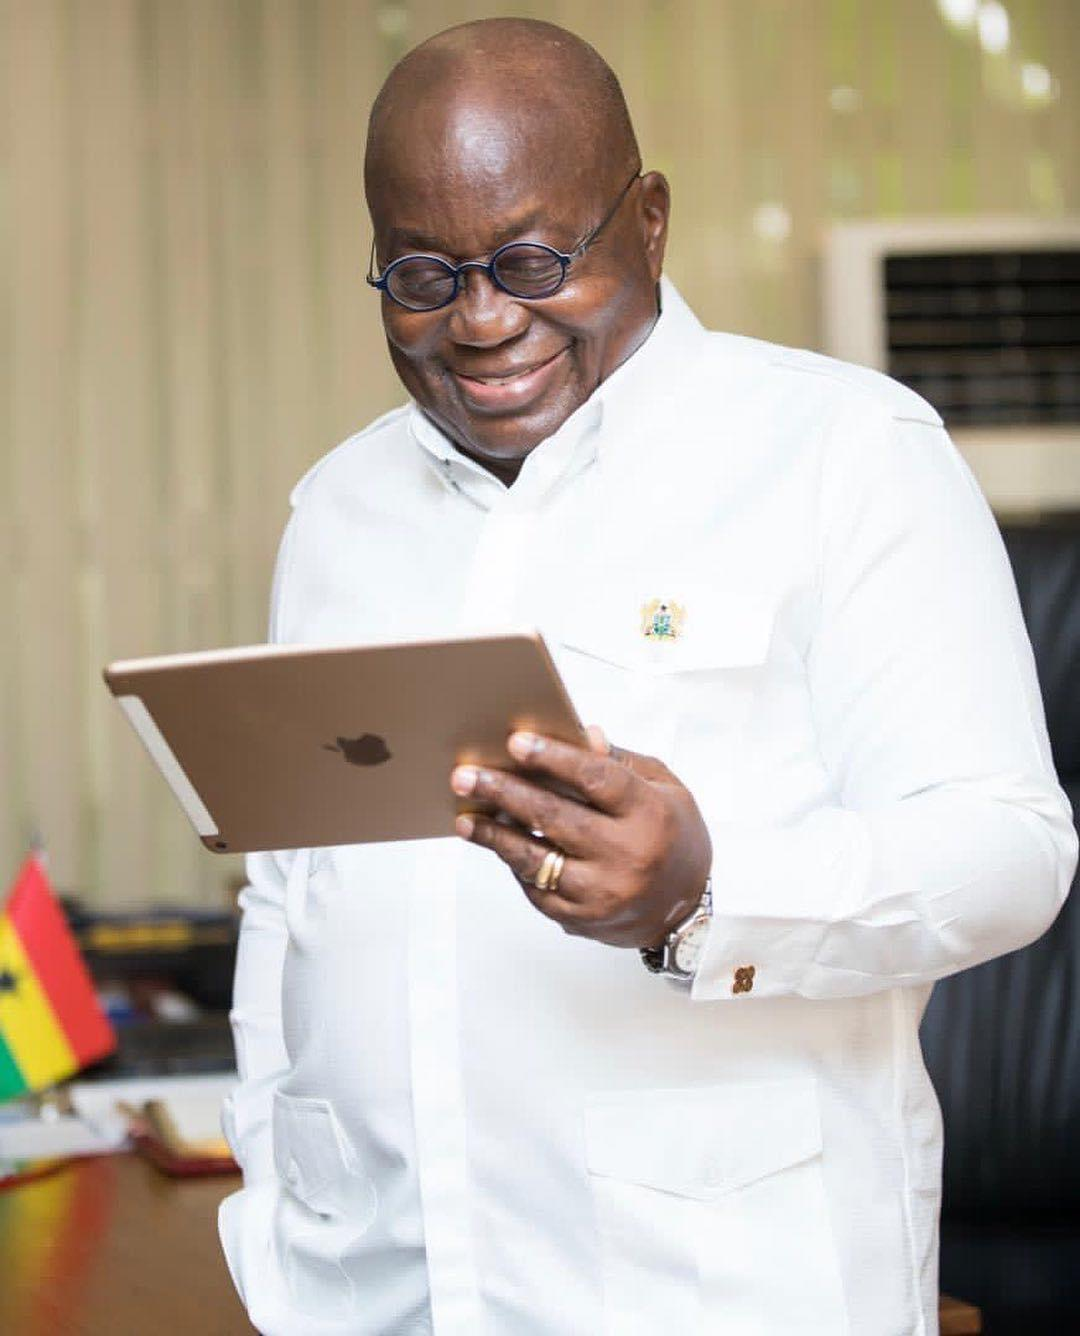 Just In: Nana Akufo-Addo declared President for a second term in office